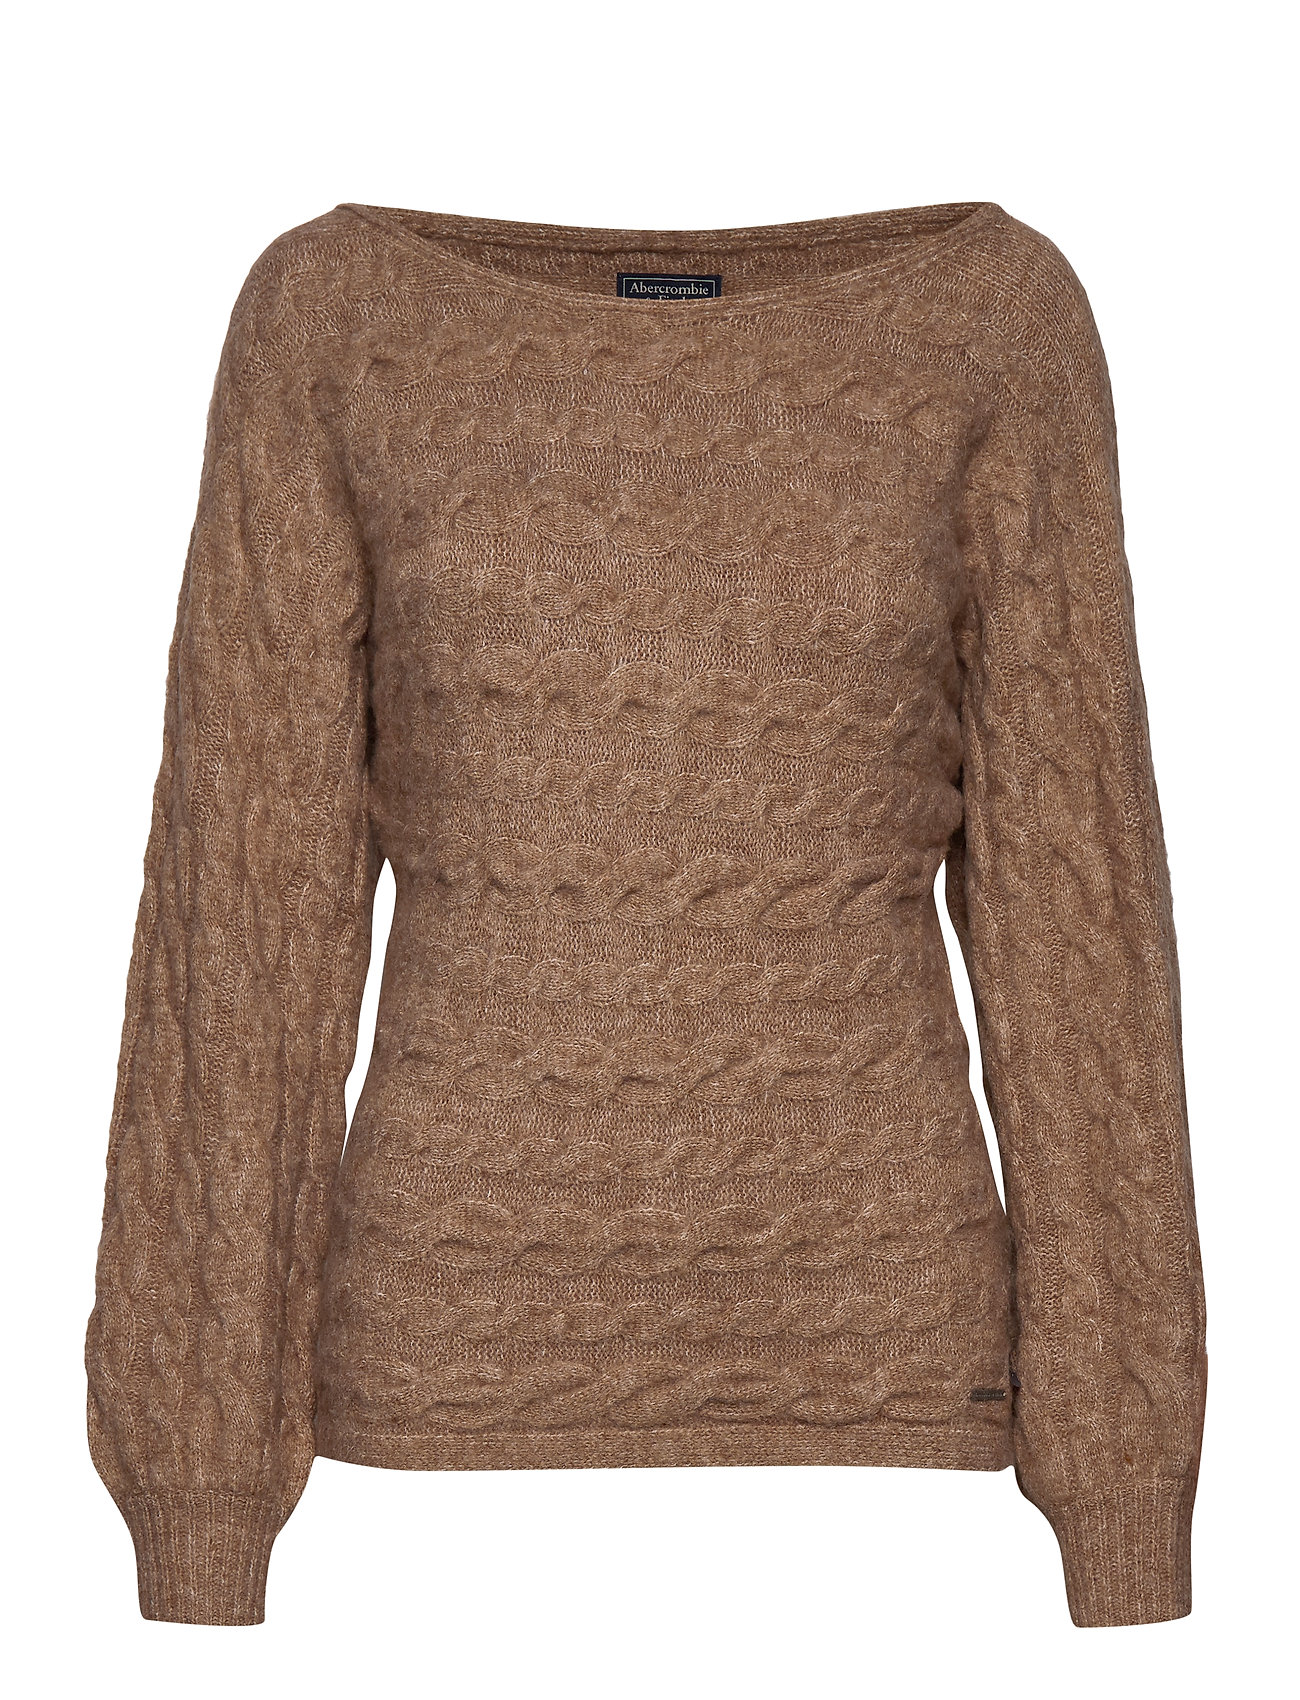 Abercrombie & Fitch Boatneck Sweater - LIGHT BROWN SD/TEXTURE